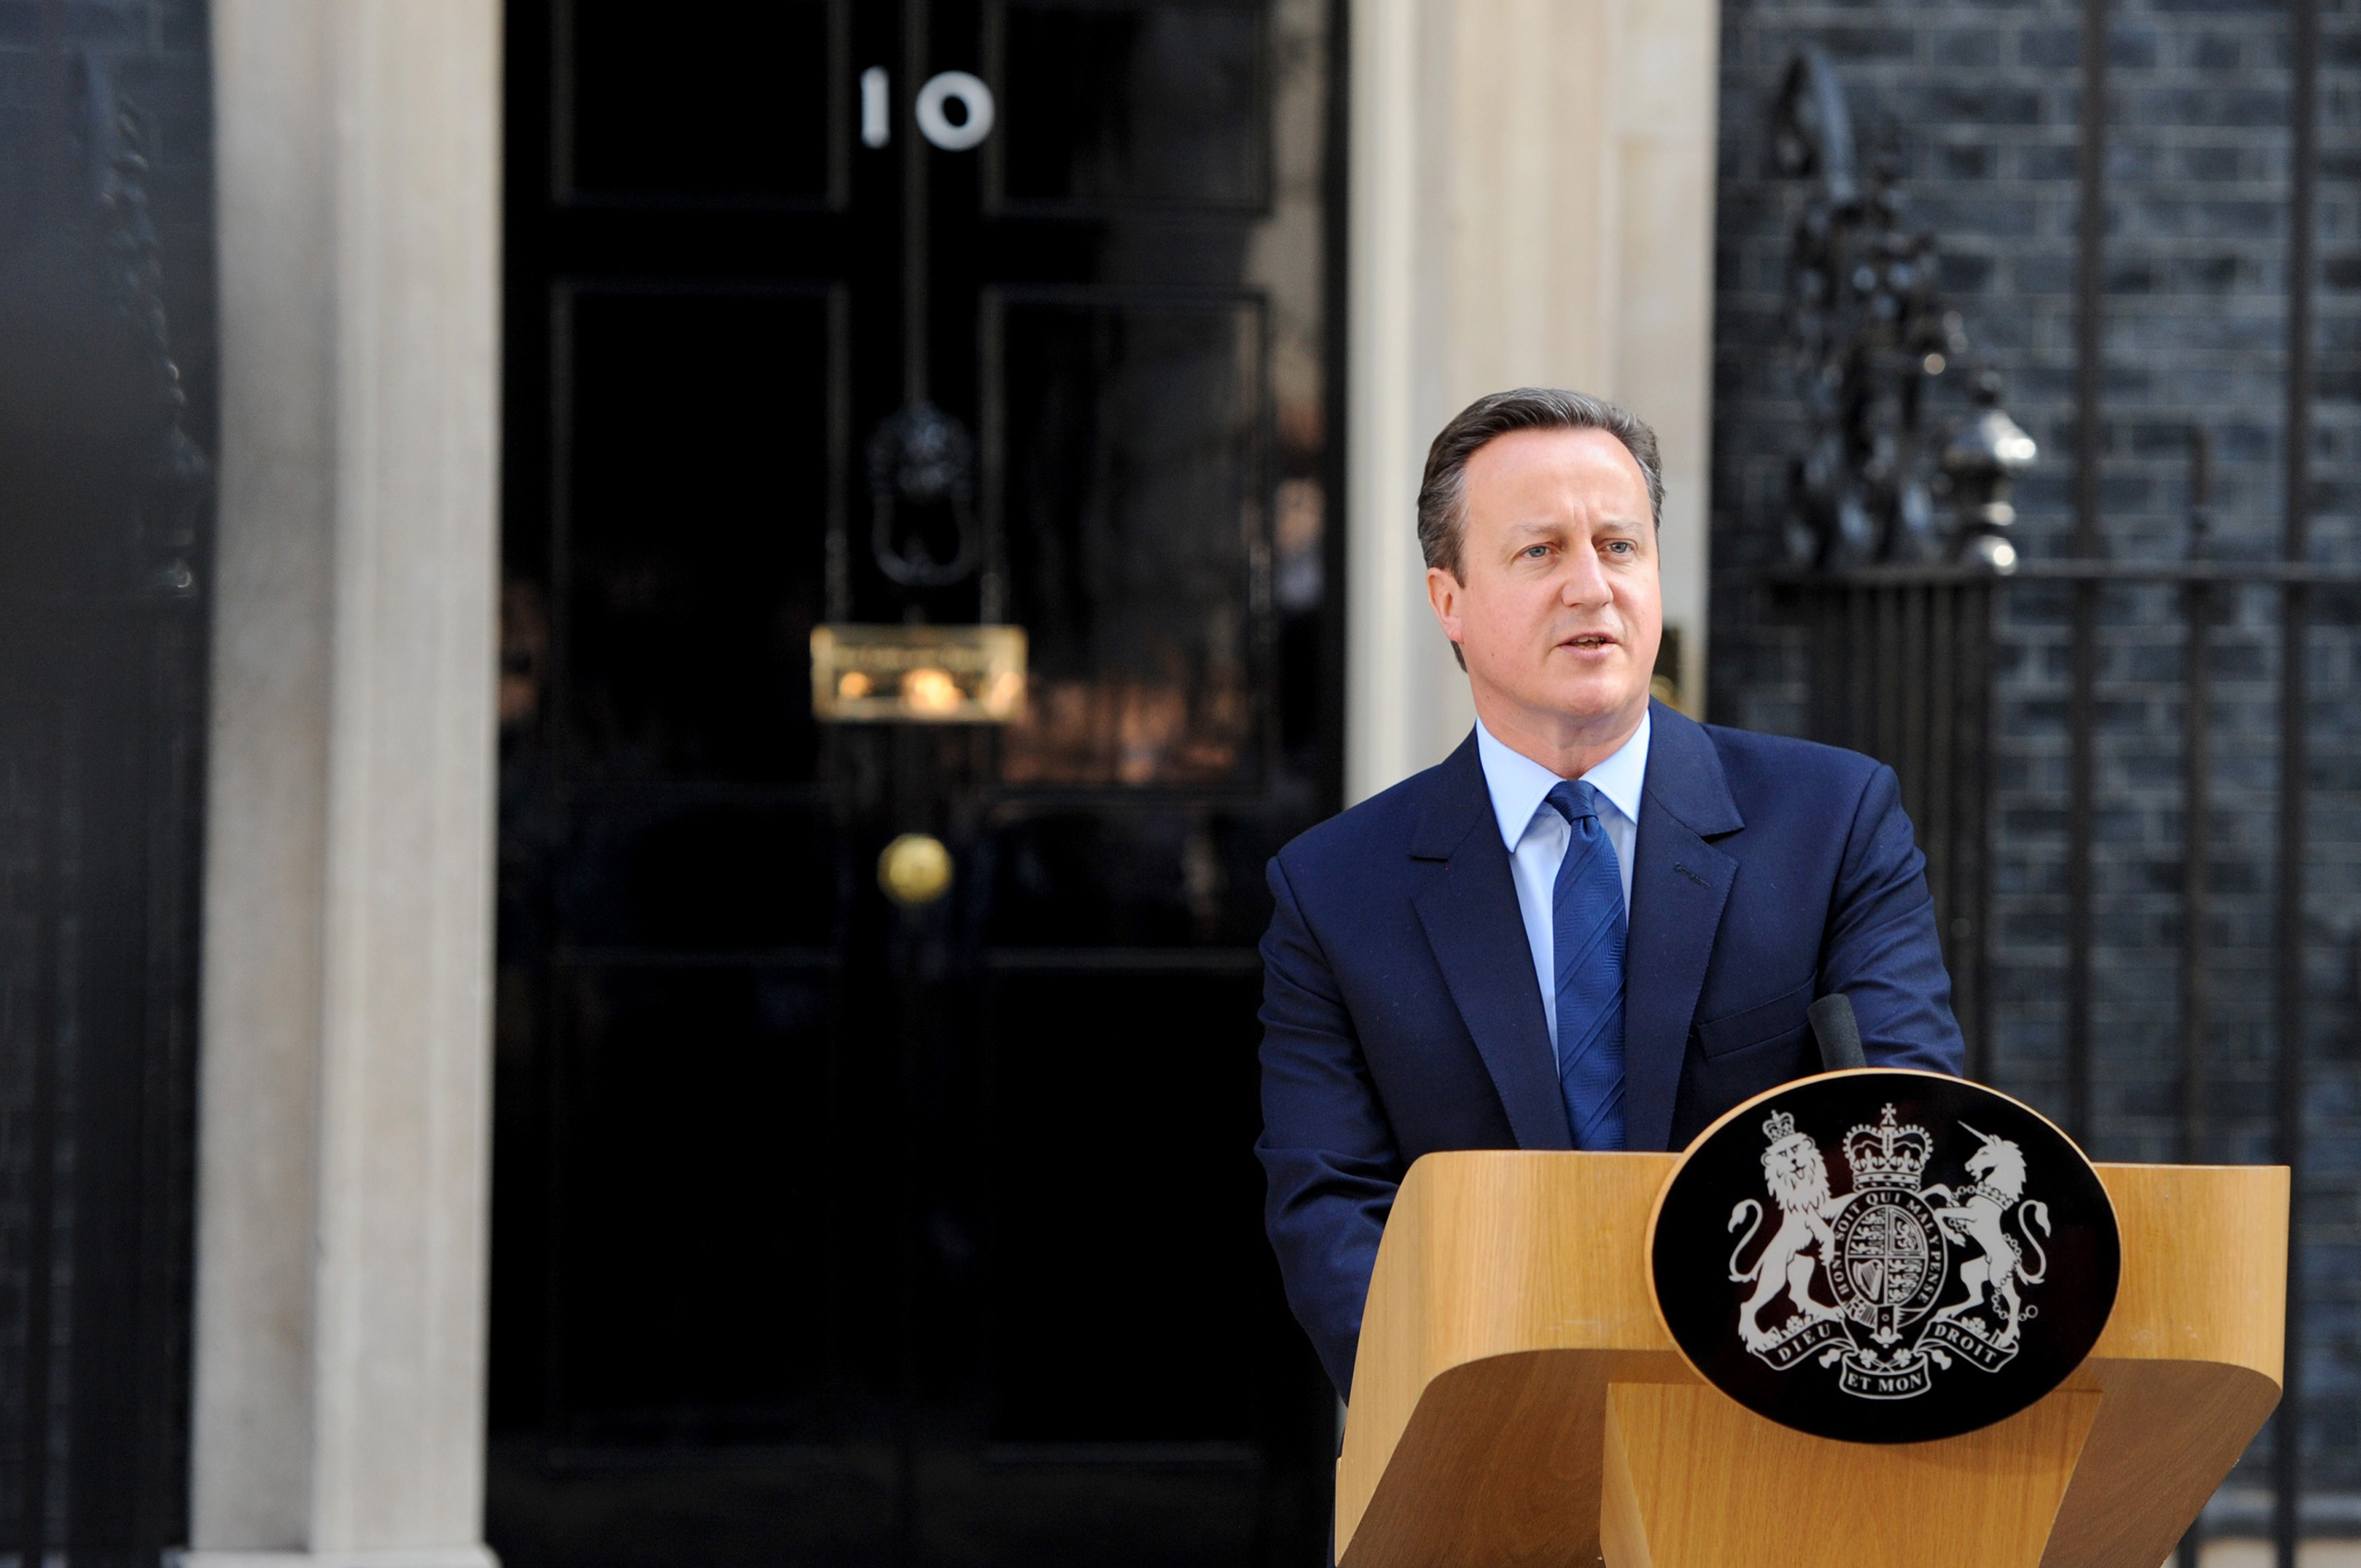 British Prime Minister, David Cameron announces his resignation at No. 10 Downing street after the UK has voted by 52% to 48% to leave the European Union after 43 years in London on June 24, 2016.